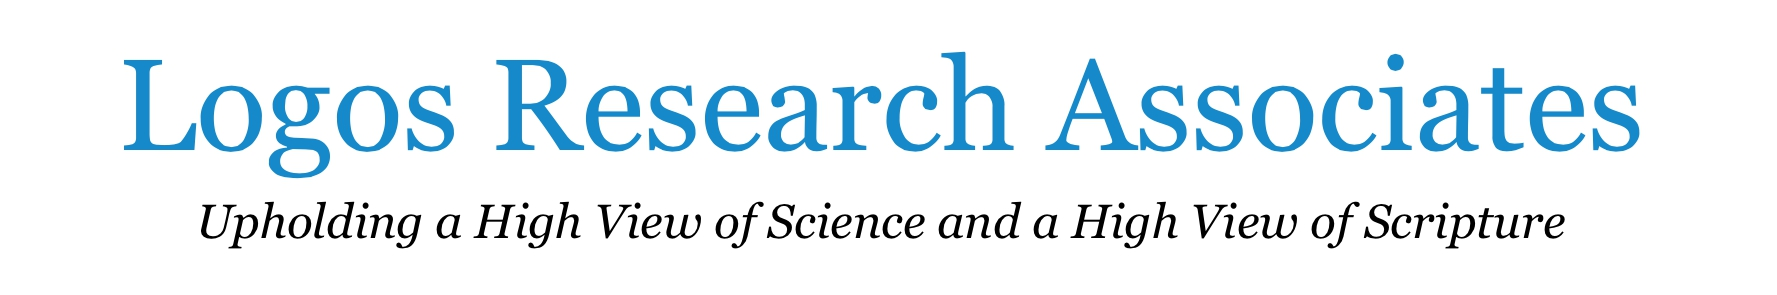 LOGOS Research Associates LOGO